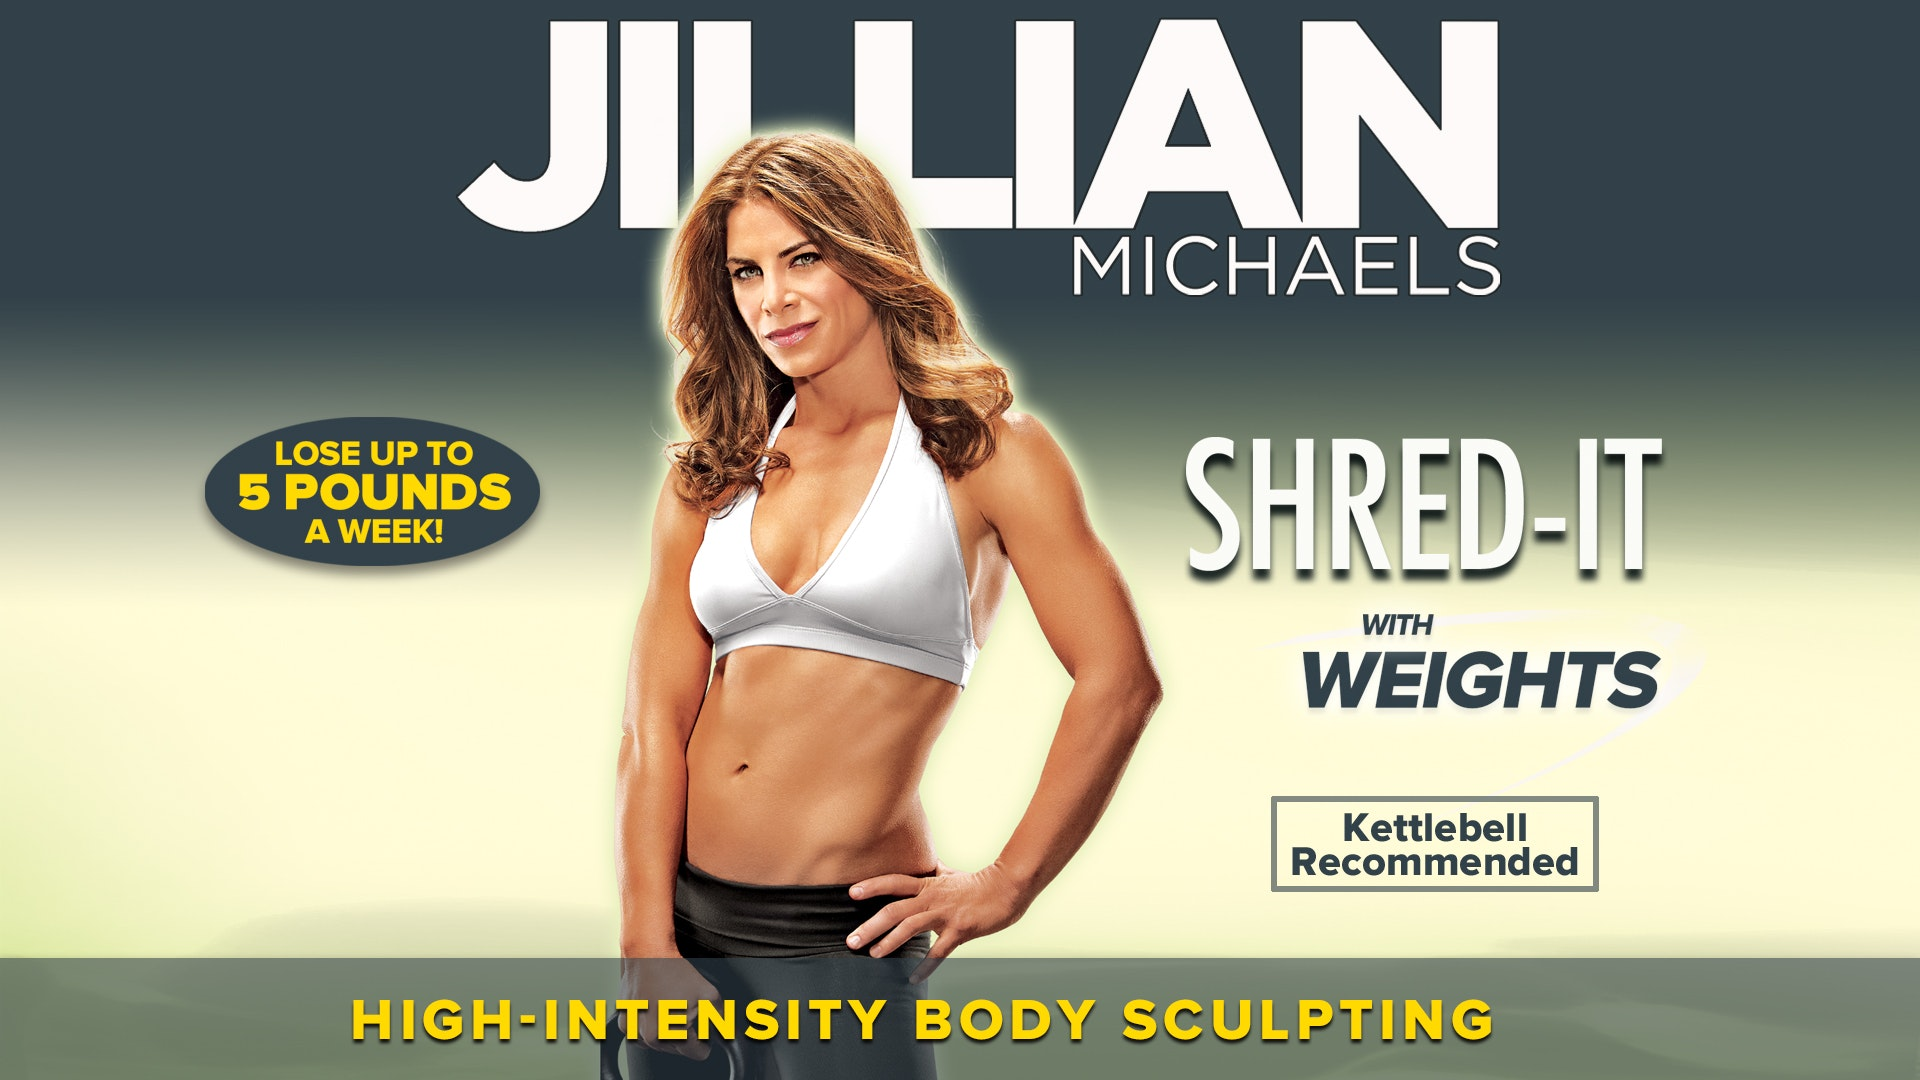 Jillian michaels shred it with weights online dating